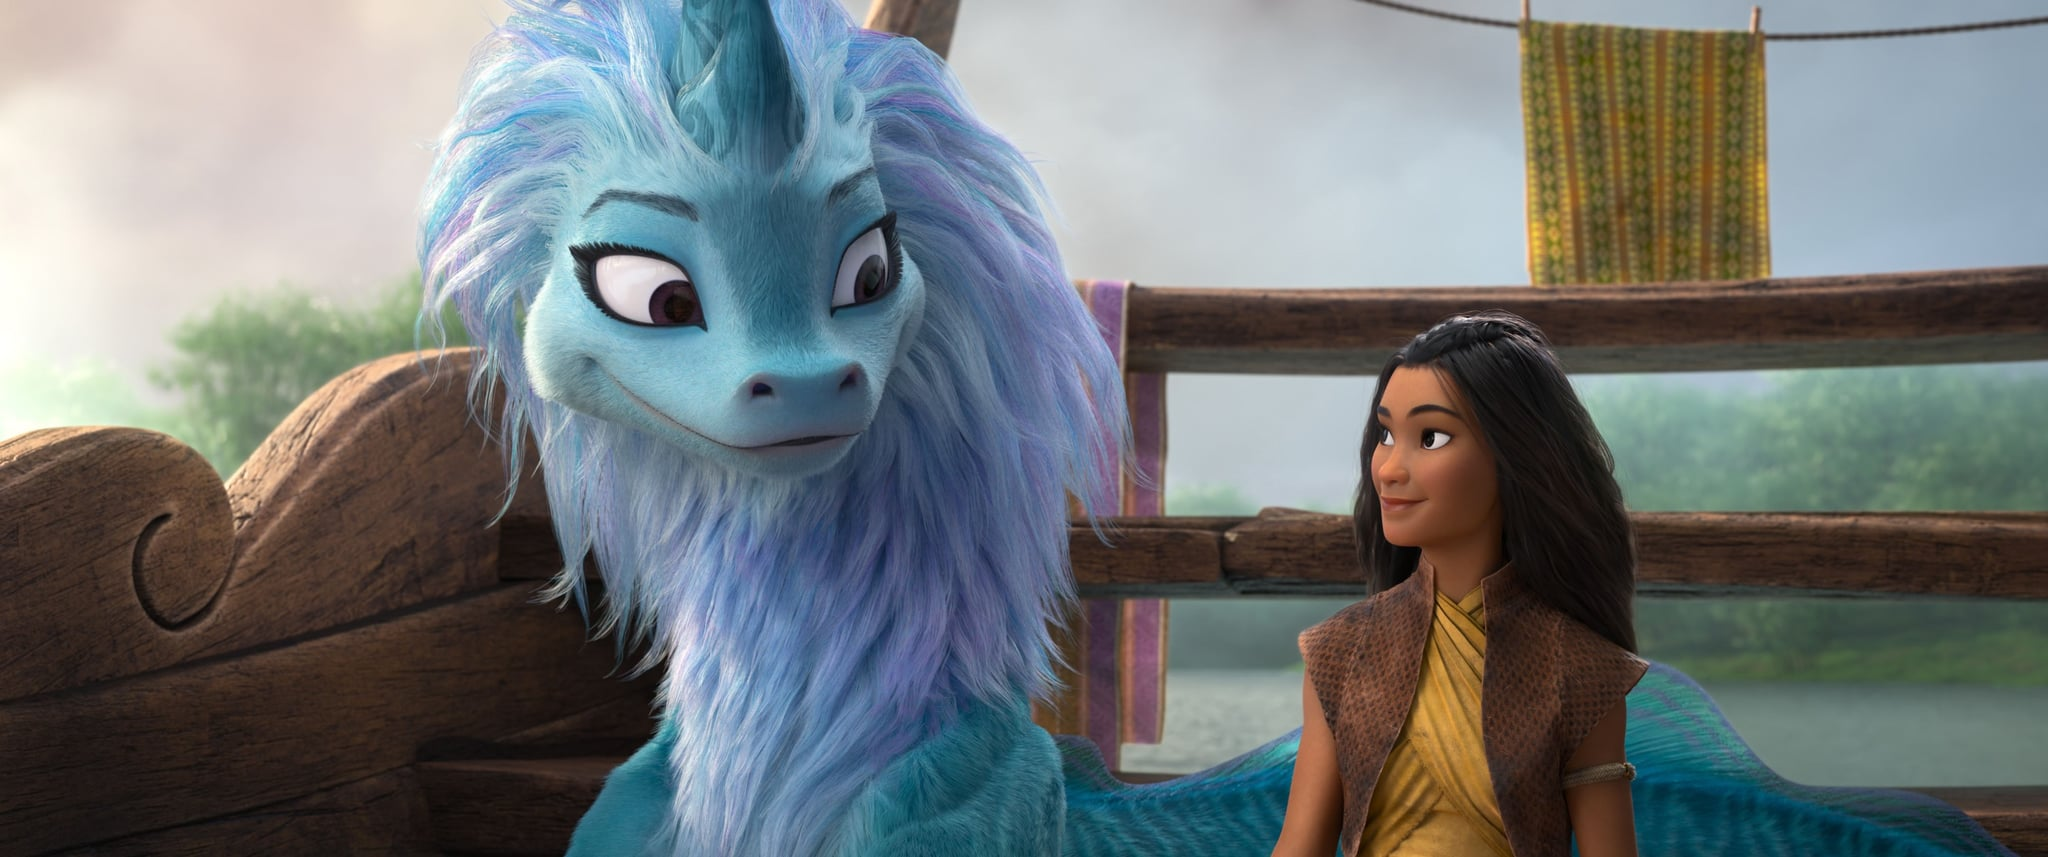 RAYA AND THE LAST DRAGON, from left: Sisu (voice: Awkwafina), Raya (voice: Kelly Marie Tran), 2021.  Walt Disney Studios Motion Pictures / Courtesy Everett Collection